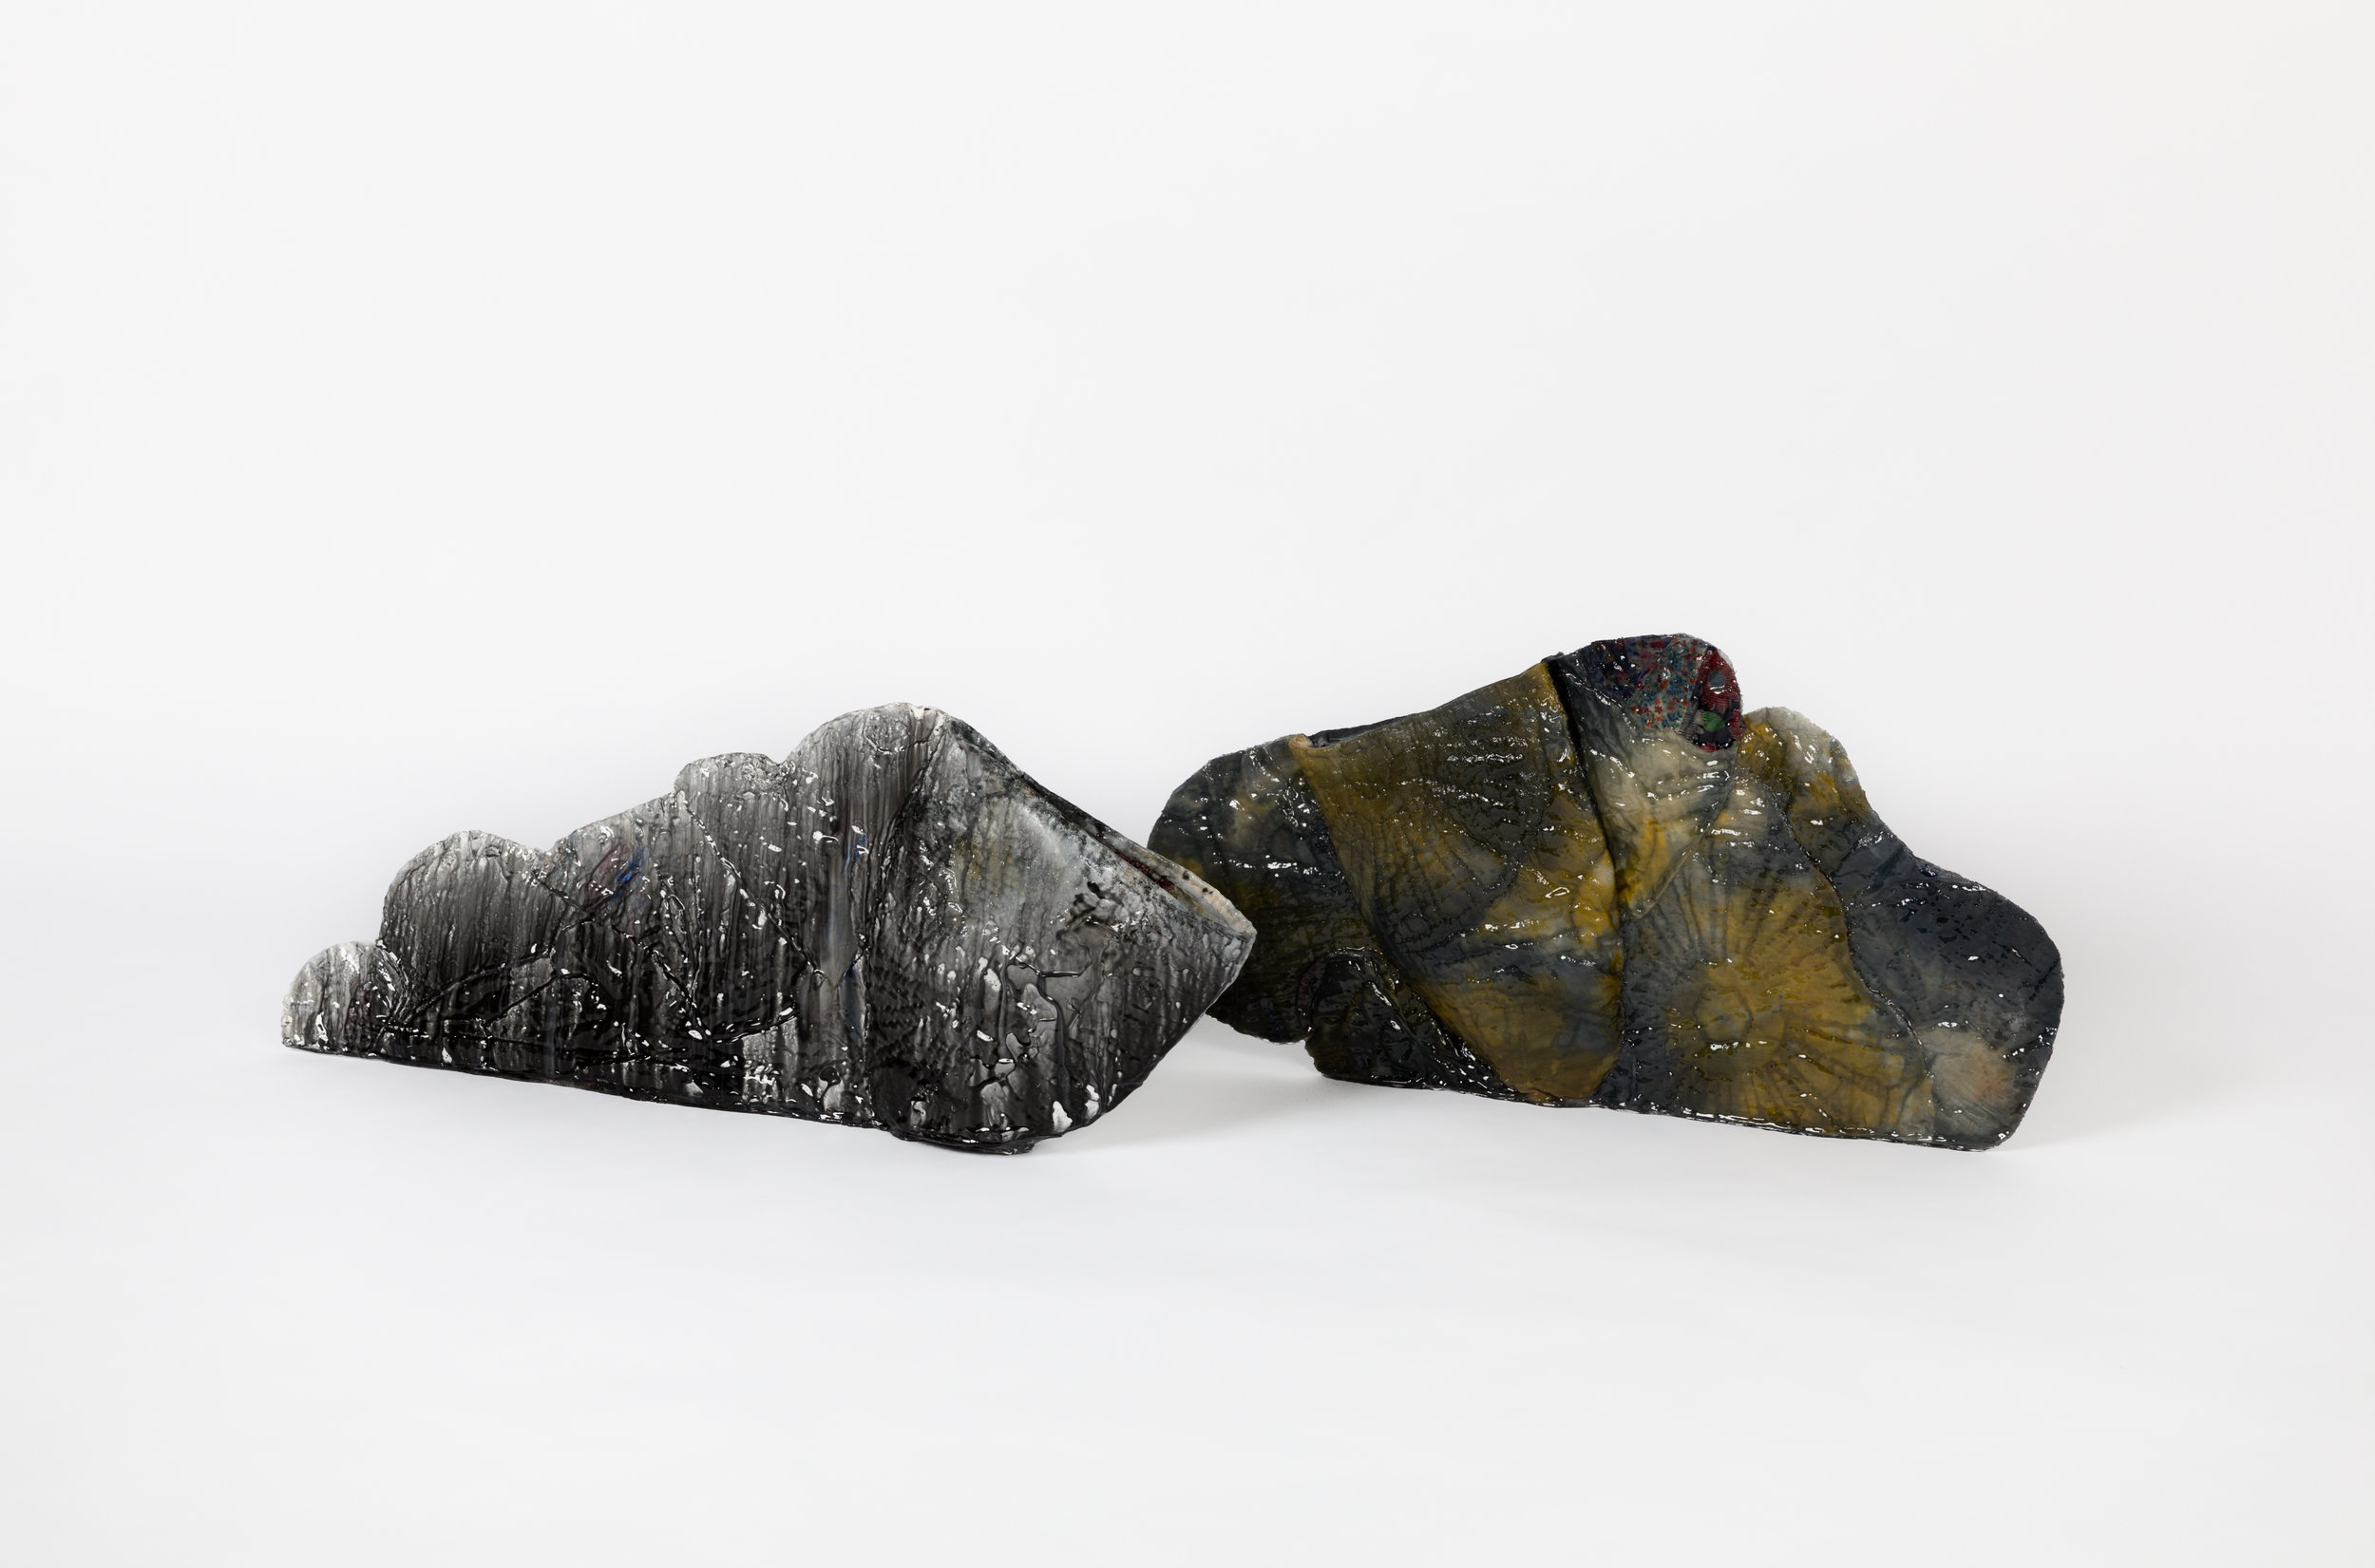 Vadis Turner,  Black and White Quilt Vessel and Leaning Cloud Quilt Vessel  (2018). Image by John Schweikert. Courtesy of Zeitgeist Gallery.